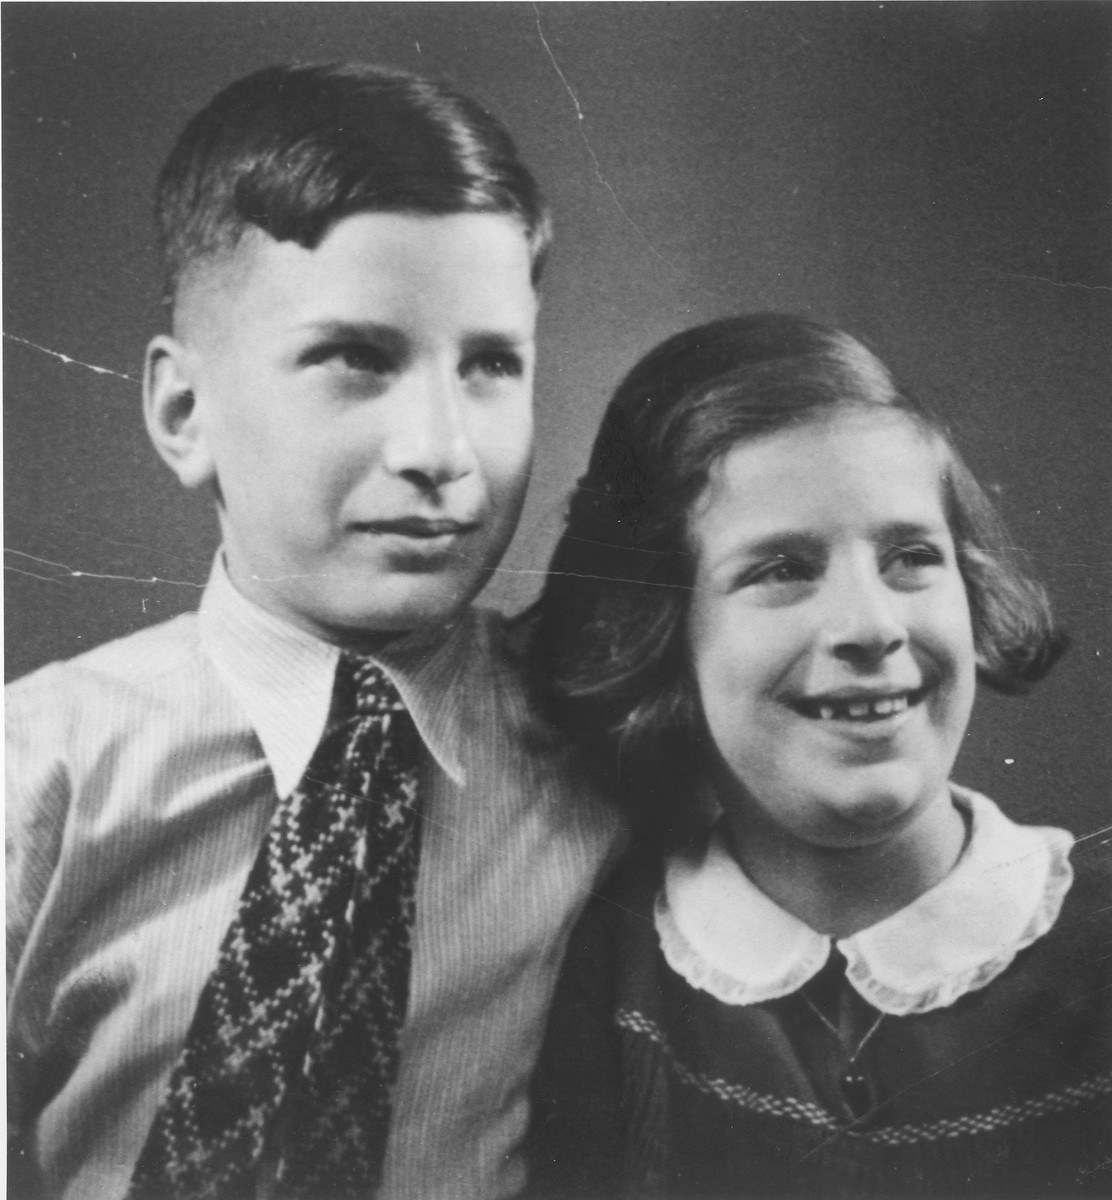 Portrait of Eva and Heinz Peter Rosenbaum taken shortly before they left for England.